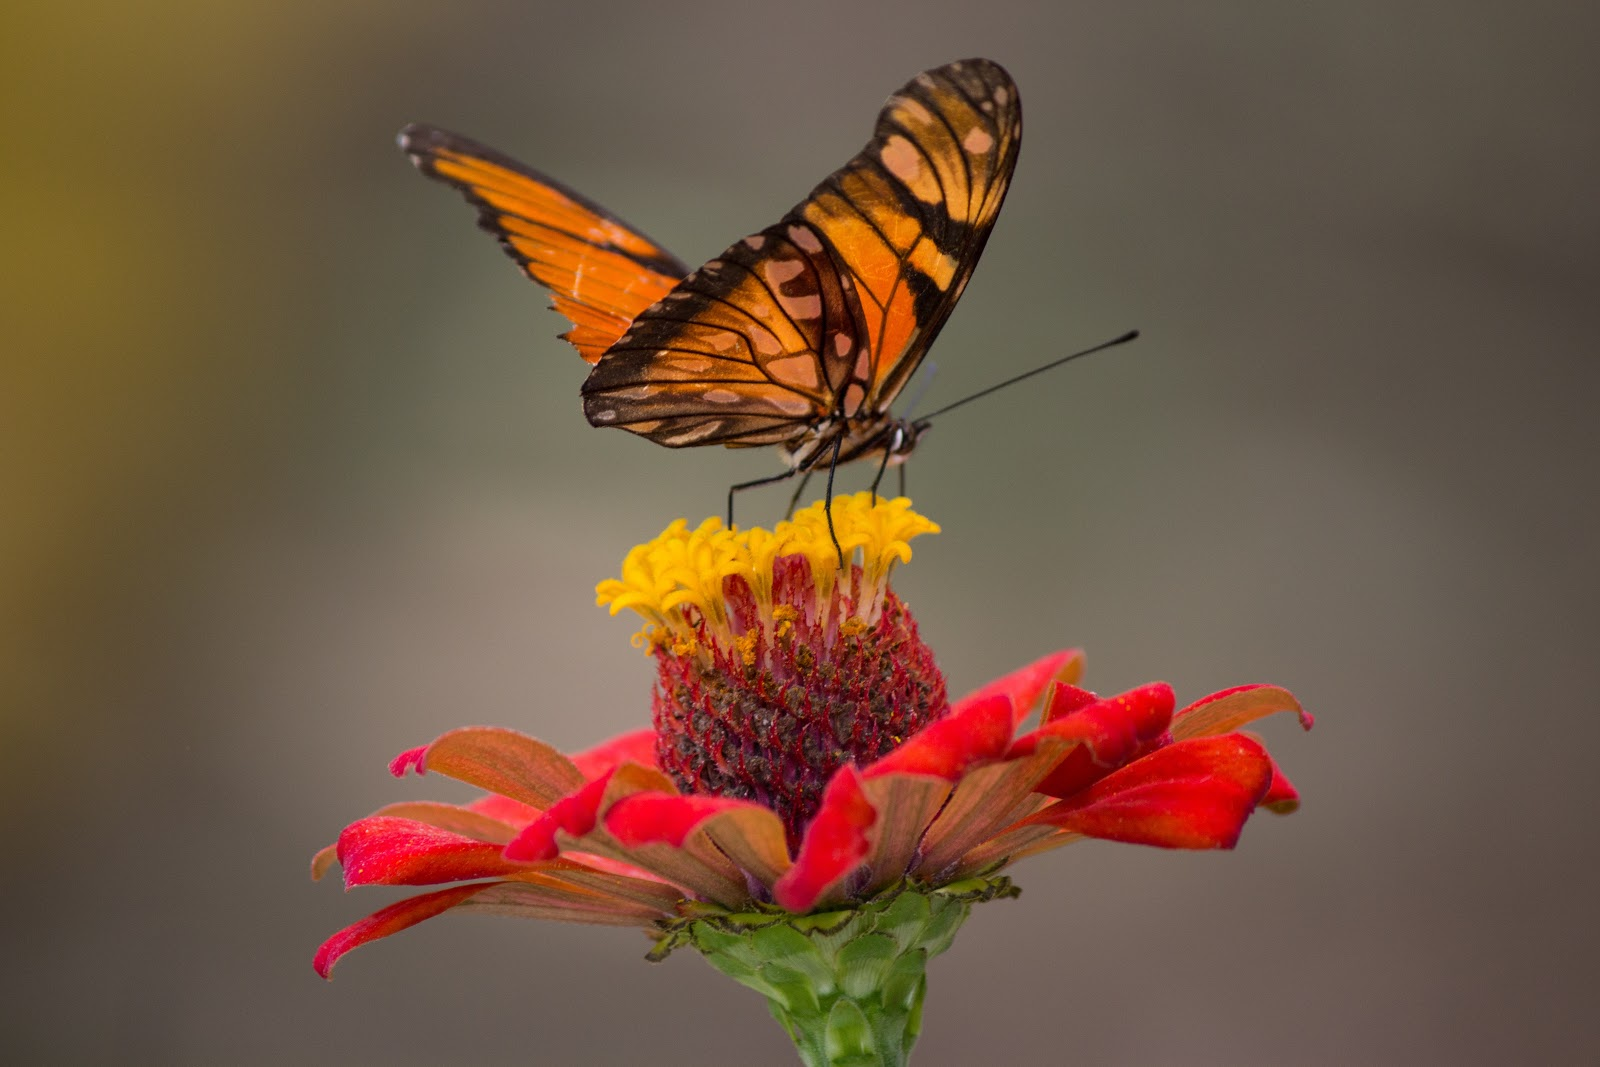 brown-and-black-butterfly-perched-on-yellow-and-red-petaled-butterfly-images